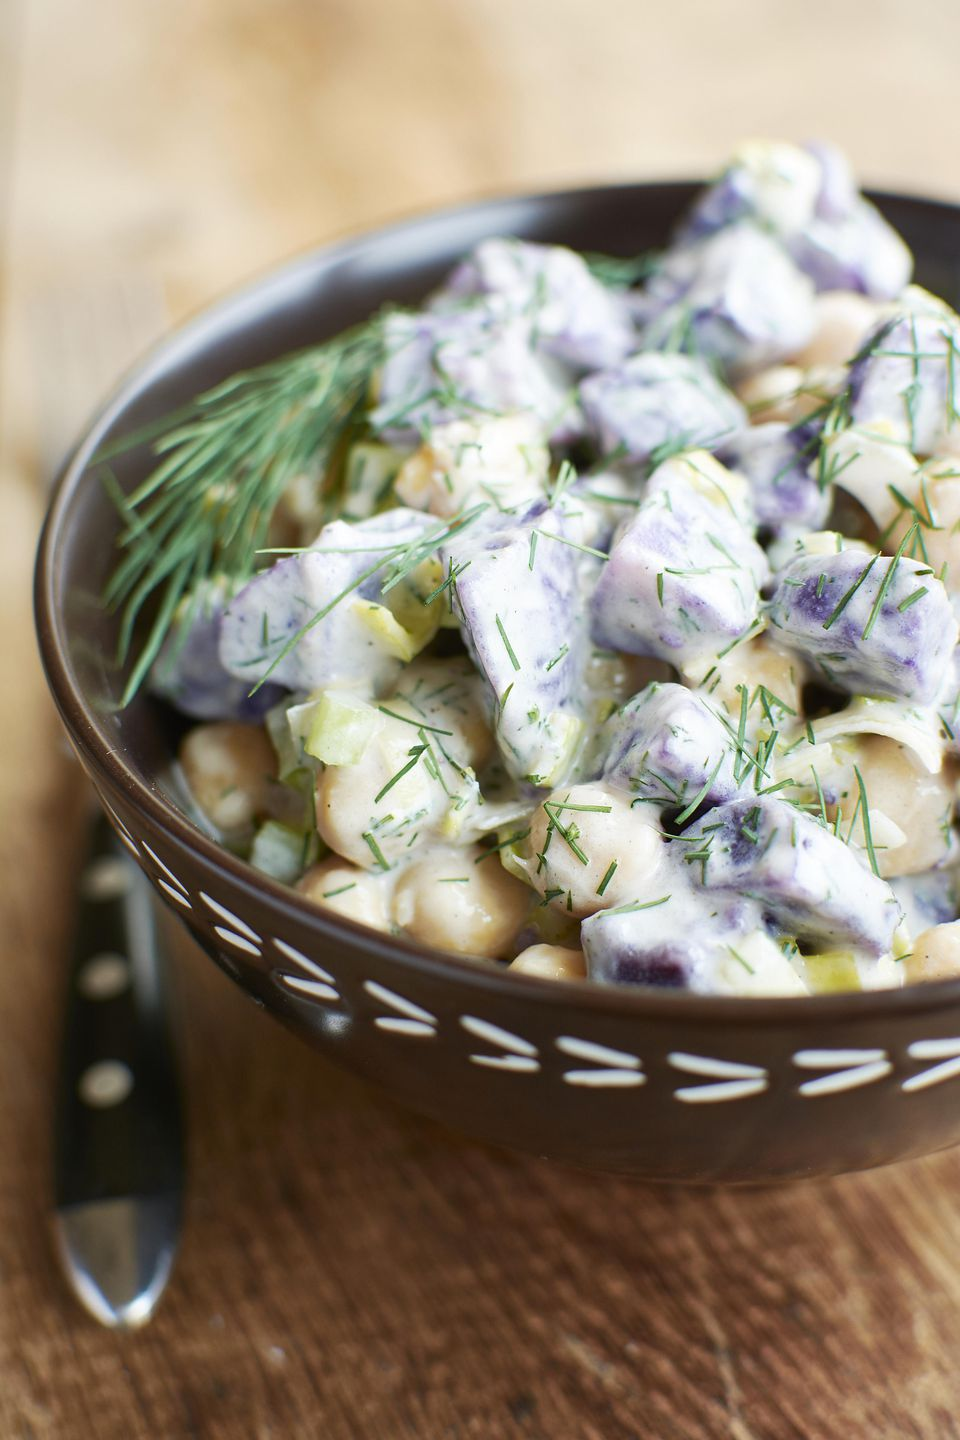 Dill and Horseradish Potato Salad